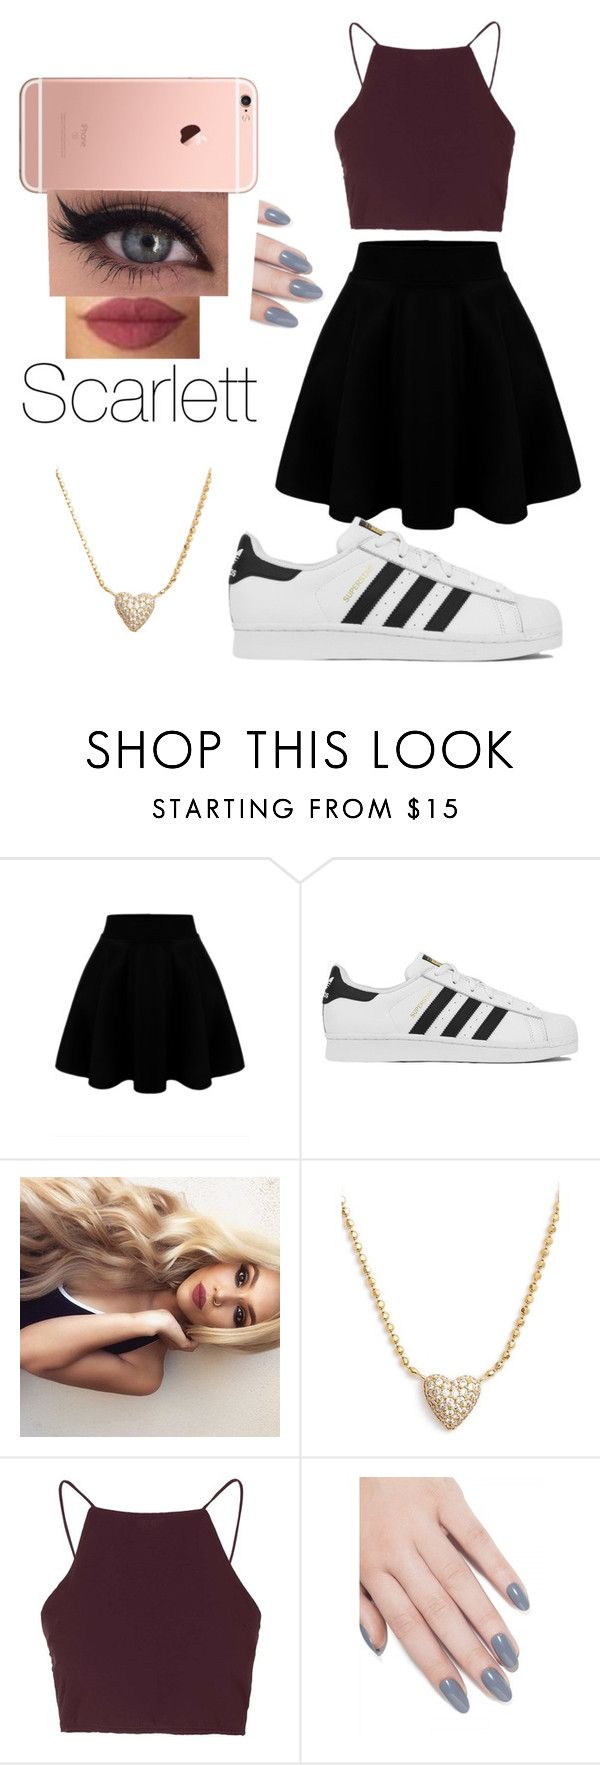 """scarlett"" by lauraederveen on Polyvore featuring adidas, Nadri, Topshop, ncLA, women's clothing, women, female, woman, misses and juniors"